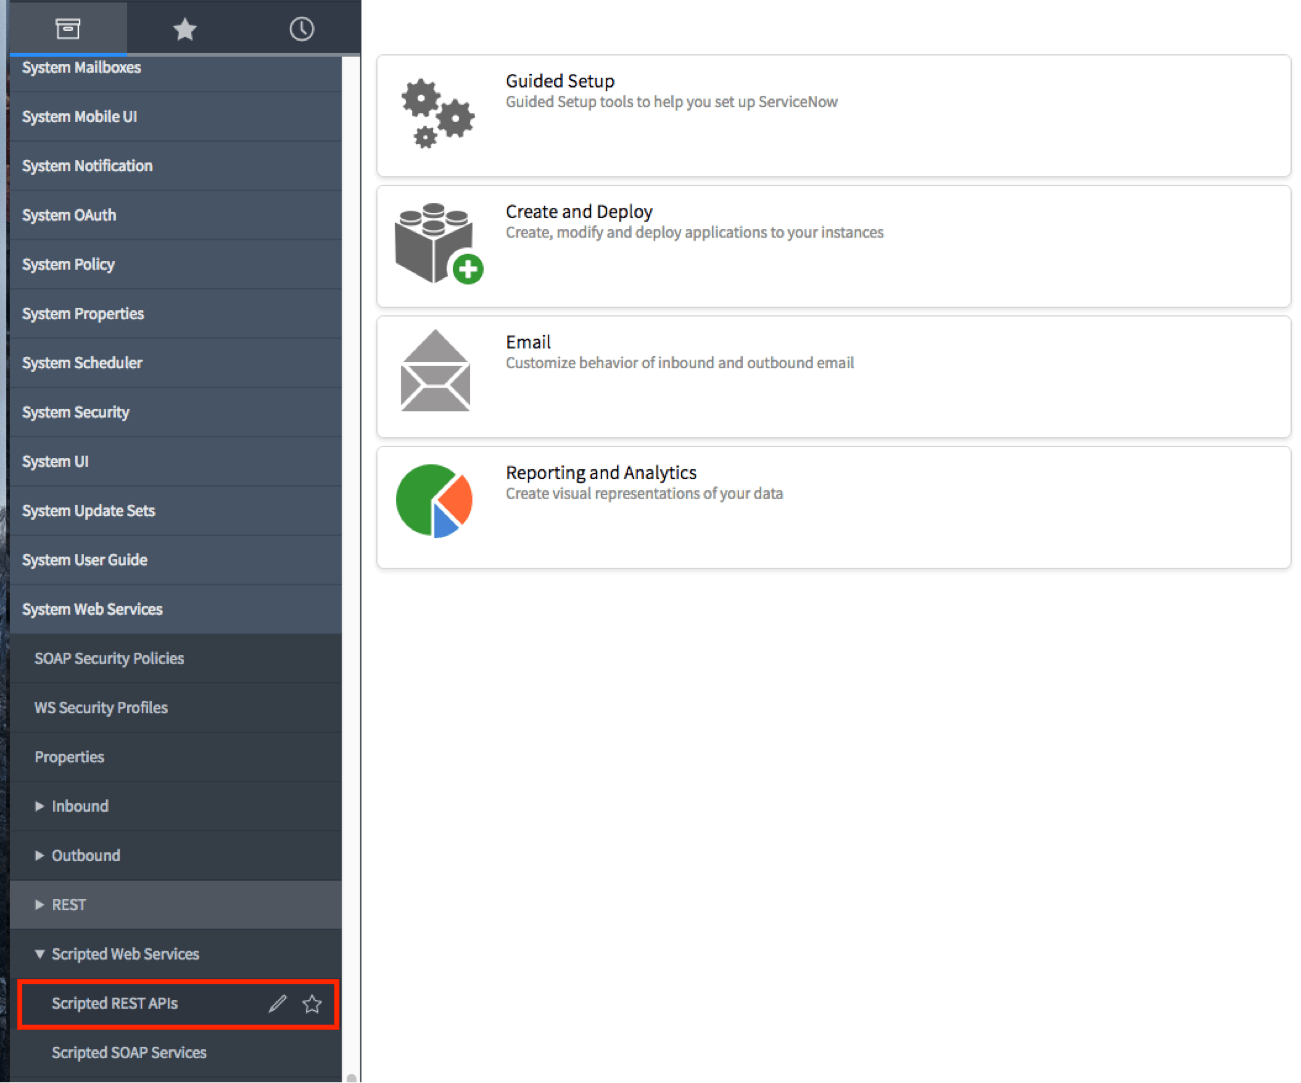 Integrate AppNeta Monitoring Data With ServiceNow Using Our API